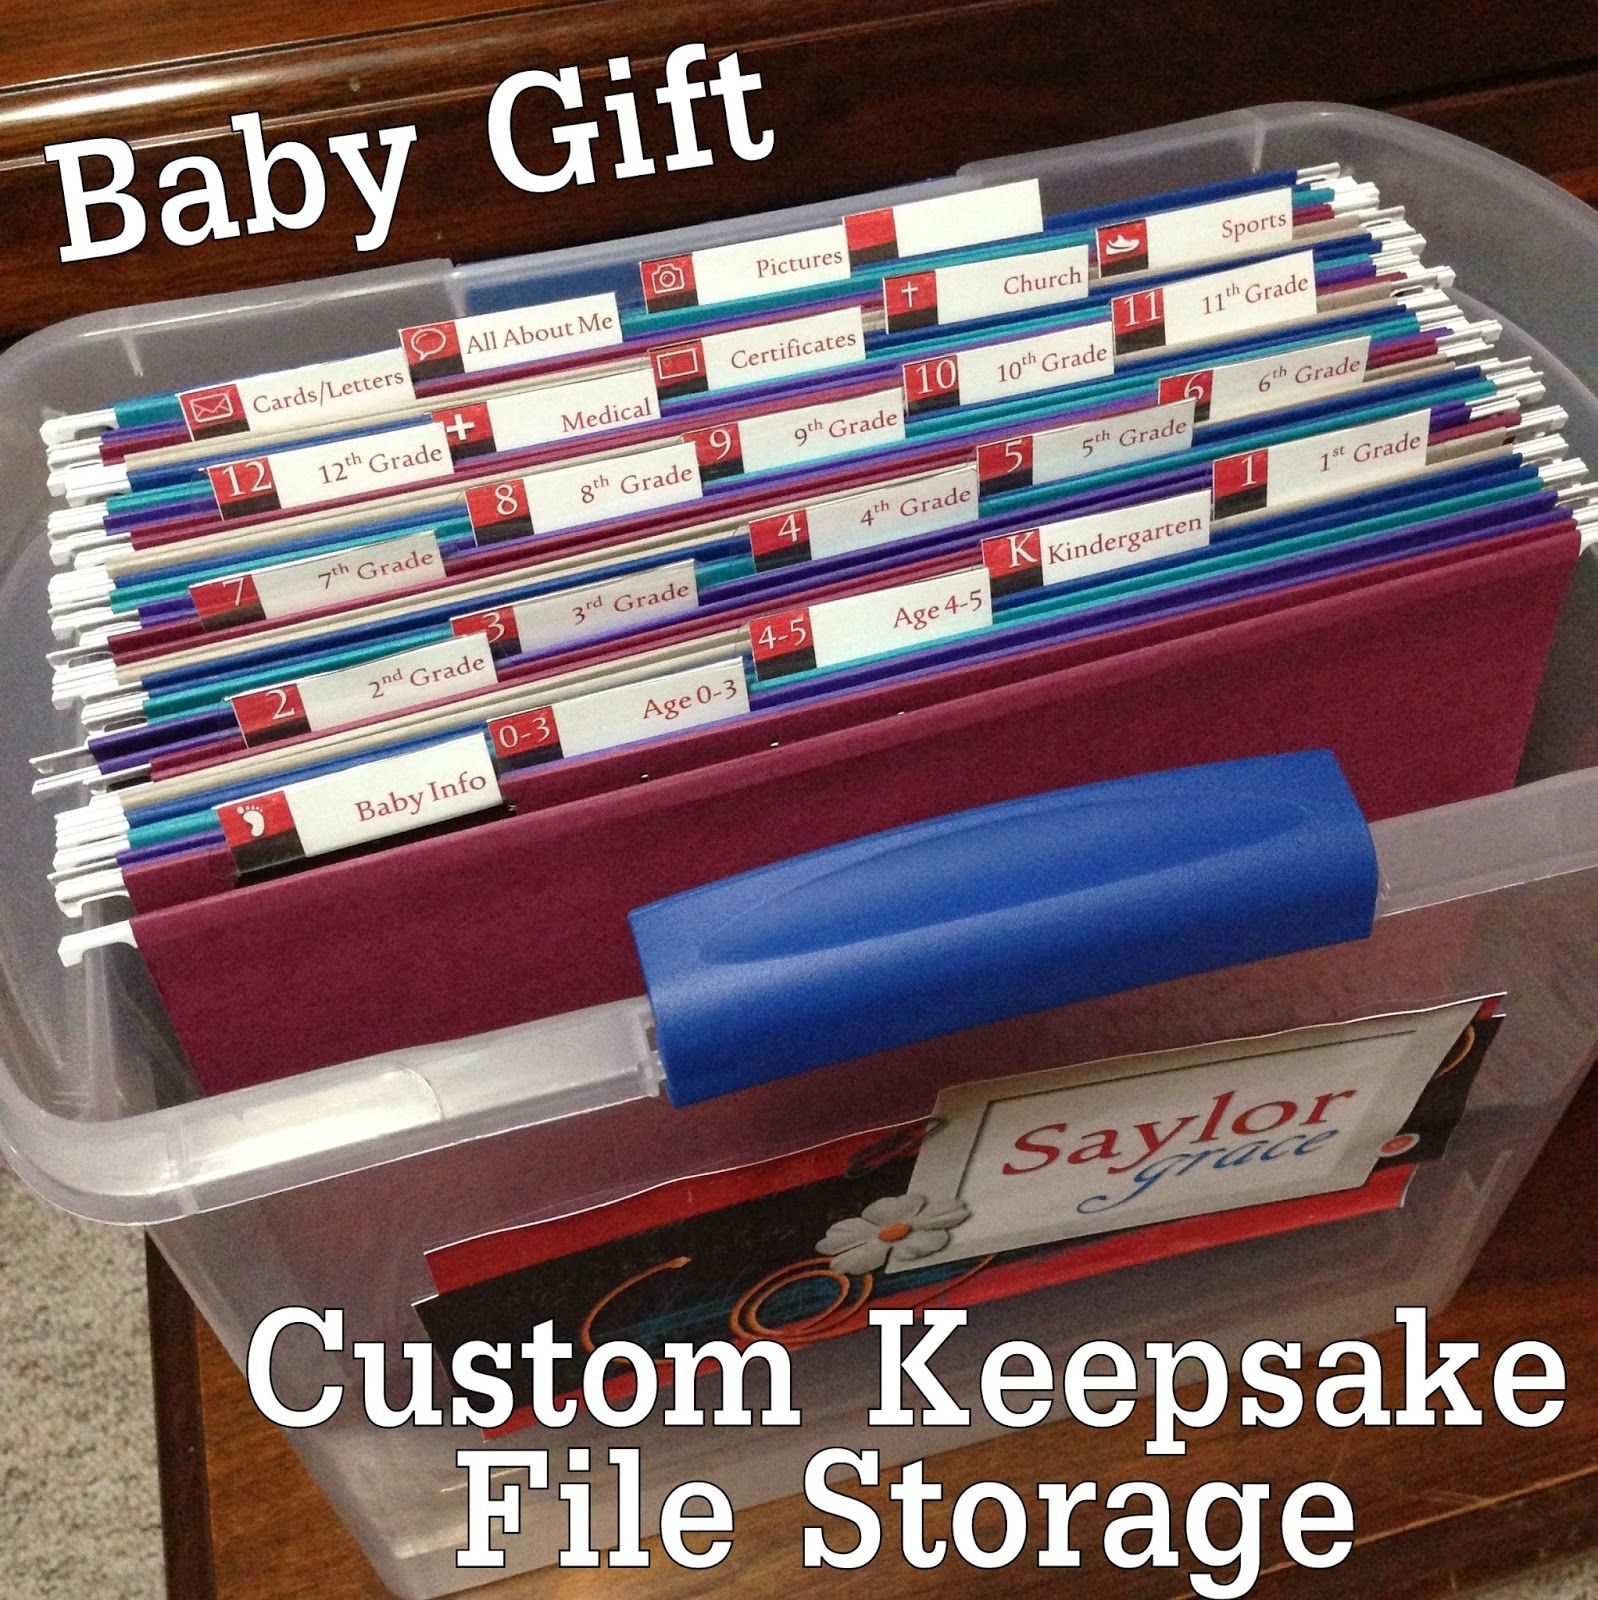 COBO Baby Gift Idea Custom Keepsake File Storage Diy